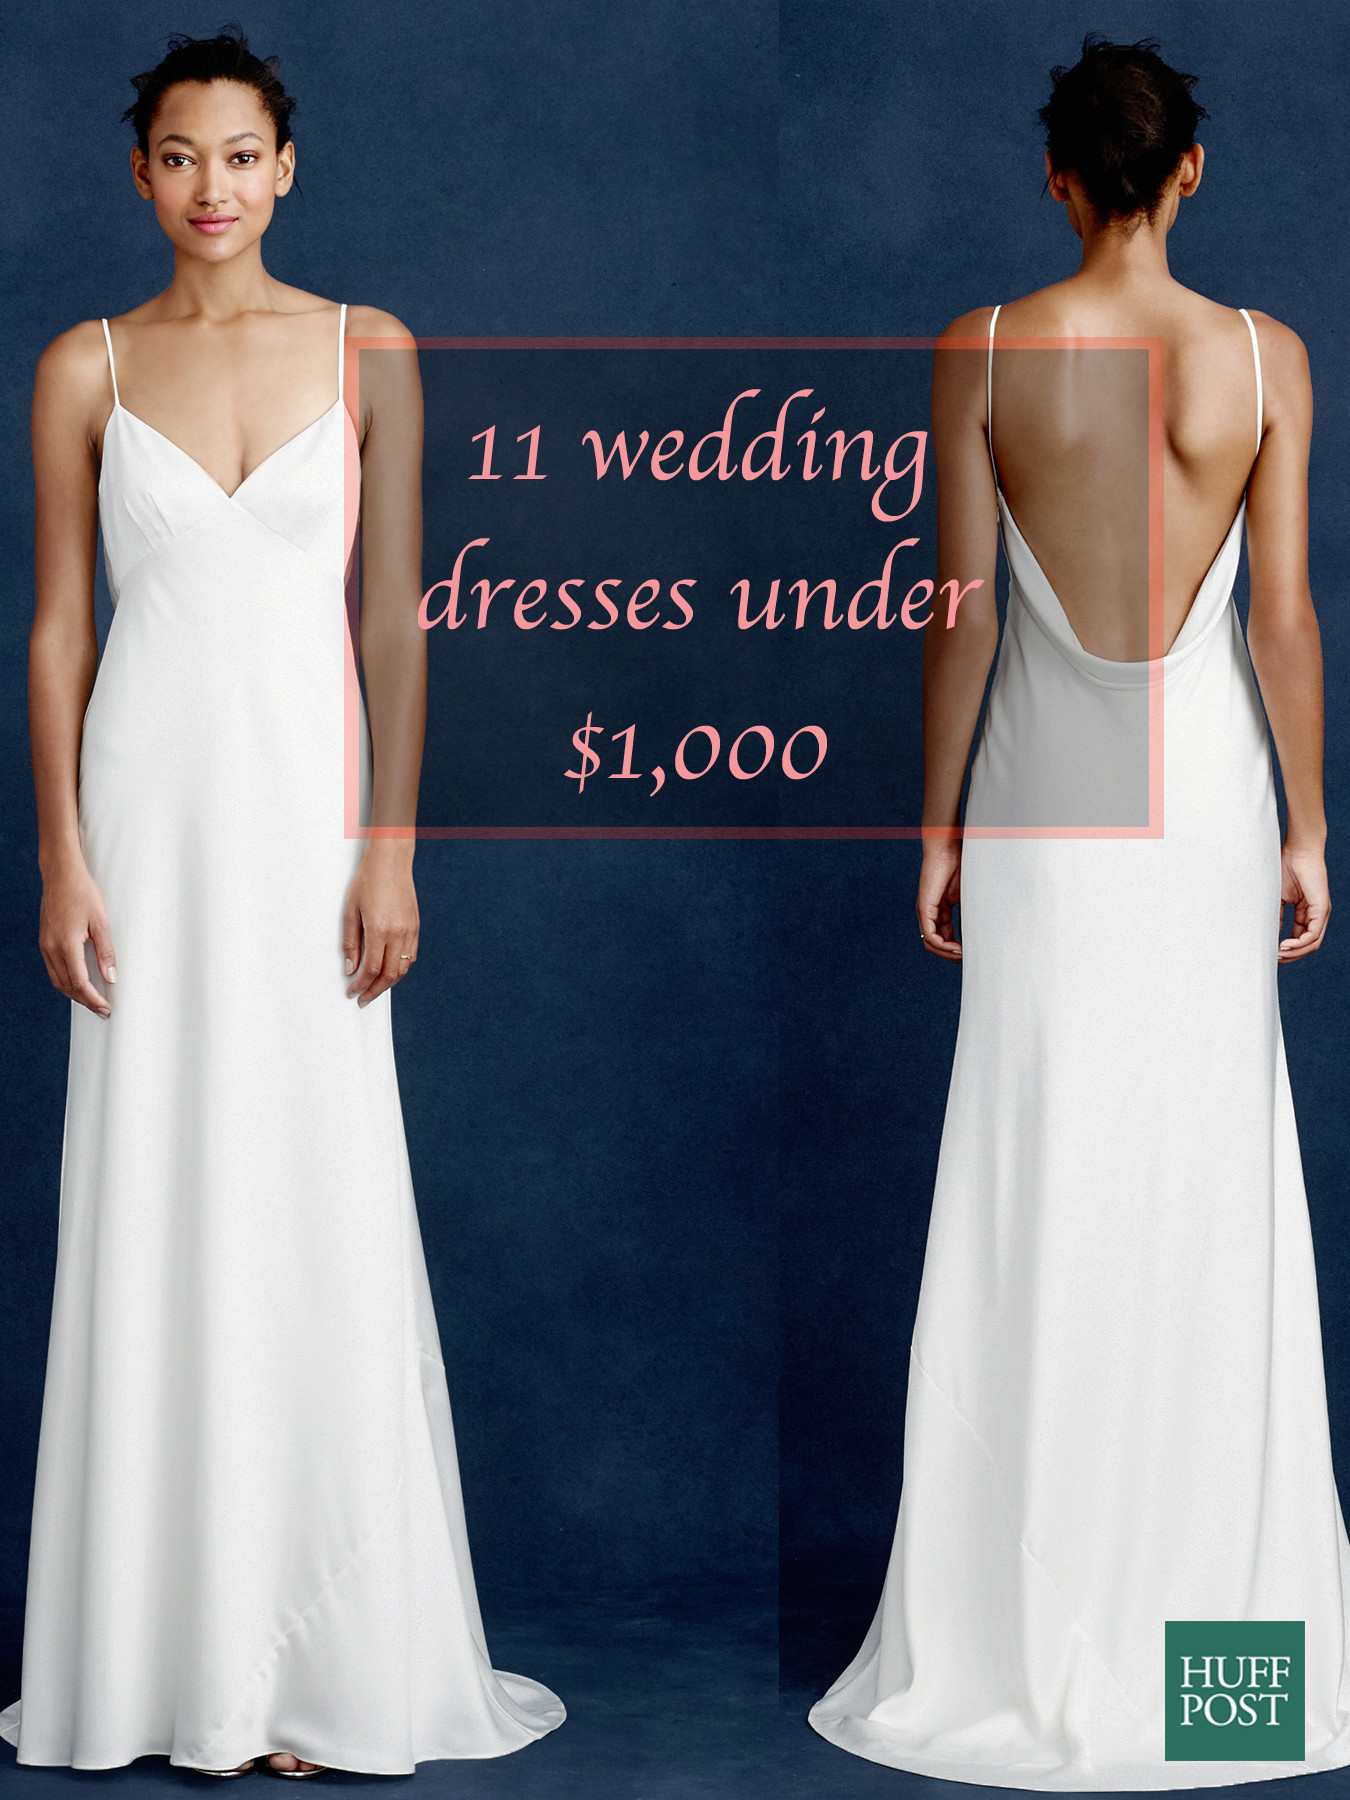 31m dollar wedding dresses